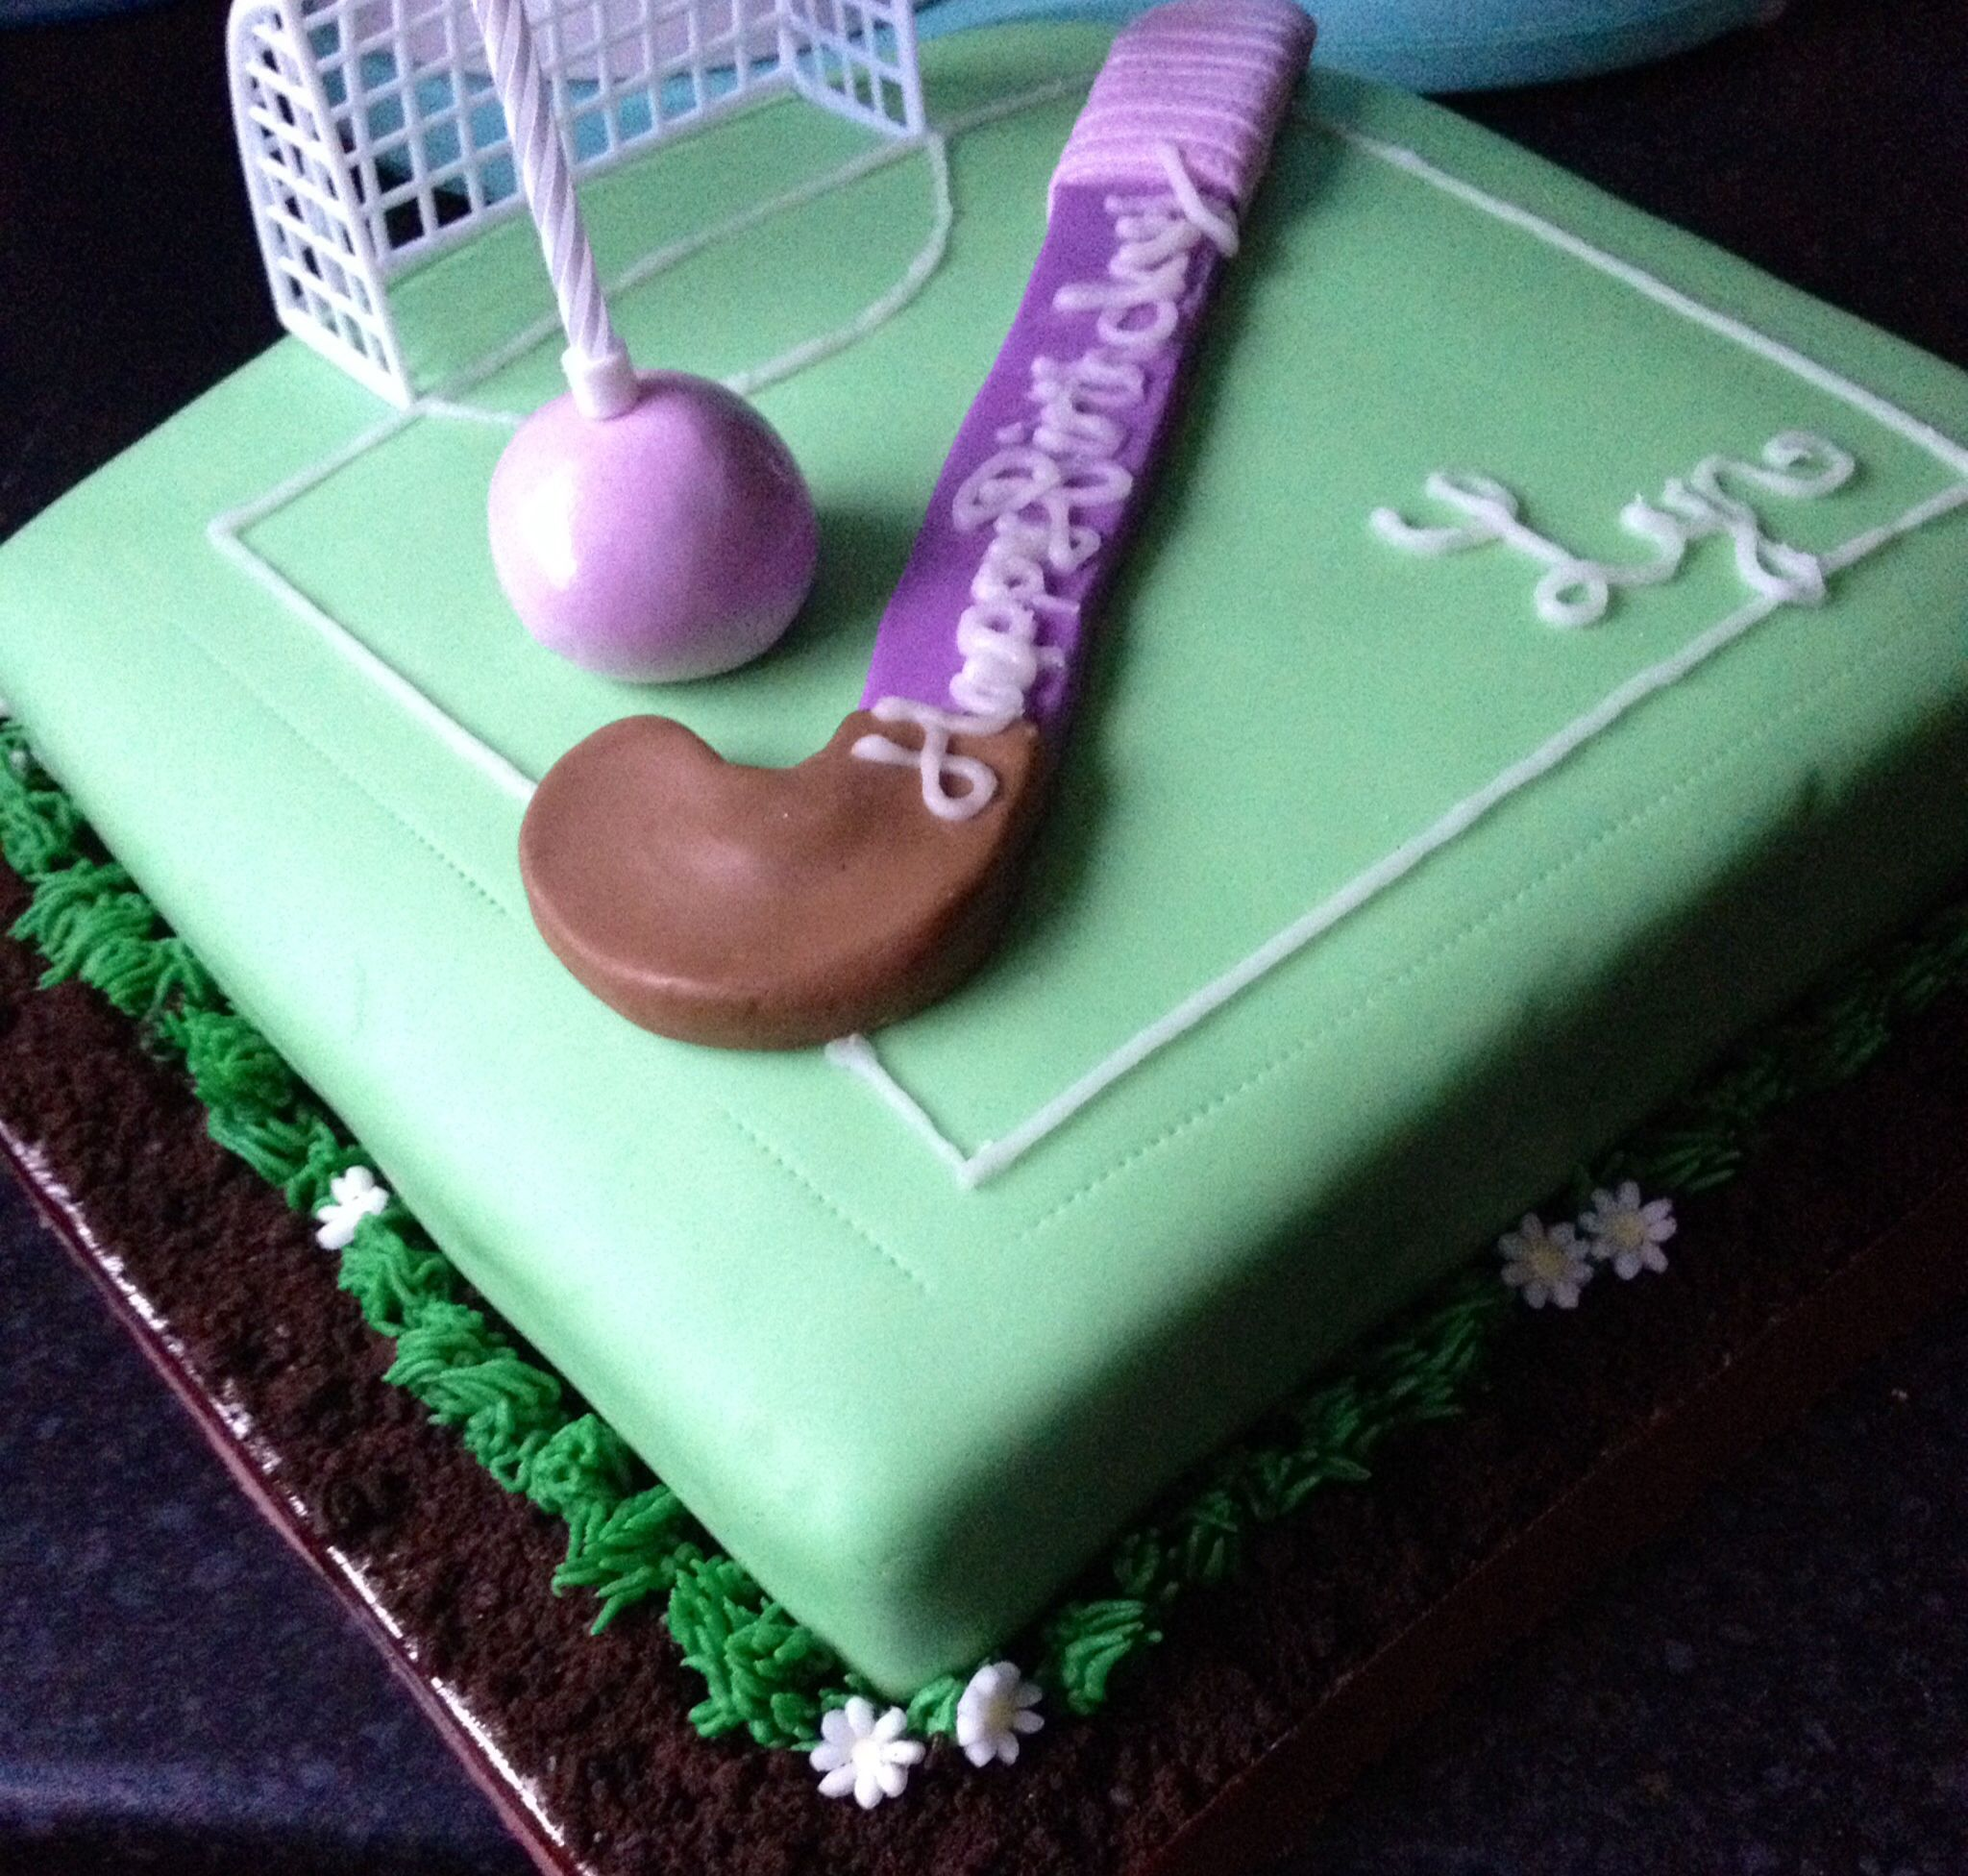 Hockey pitchfield English hockey Birthday cake fondant